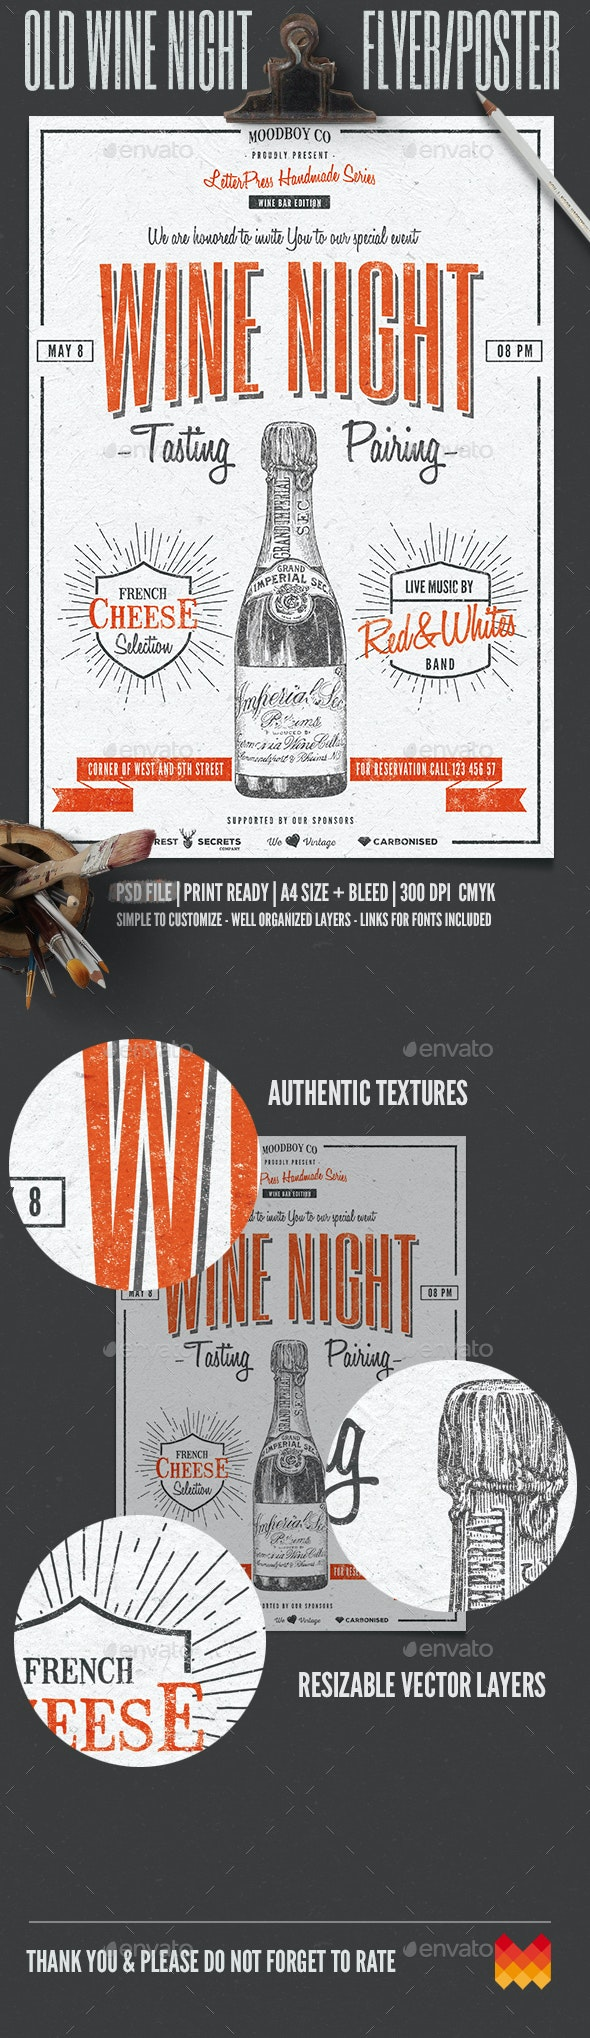 Vintage Wine Night Flyer/Poster - Flyers Print Templates